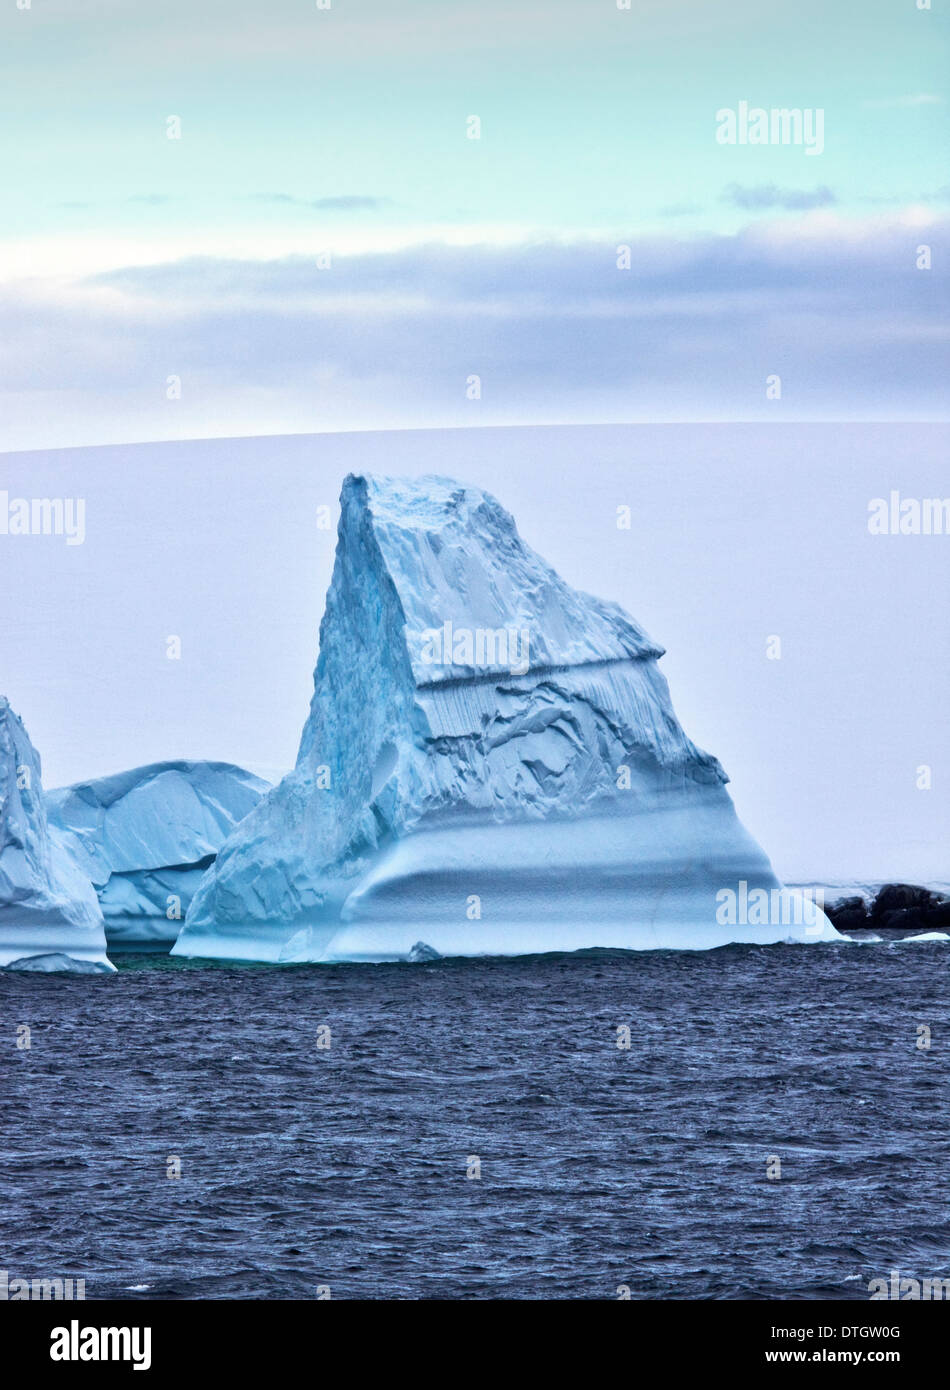 Le détroit de Gerlache, Iceberg, Péninsule Antarctique Photo Stock